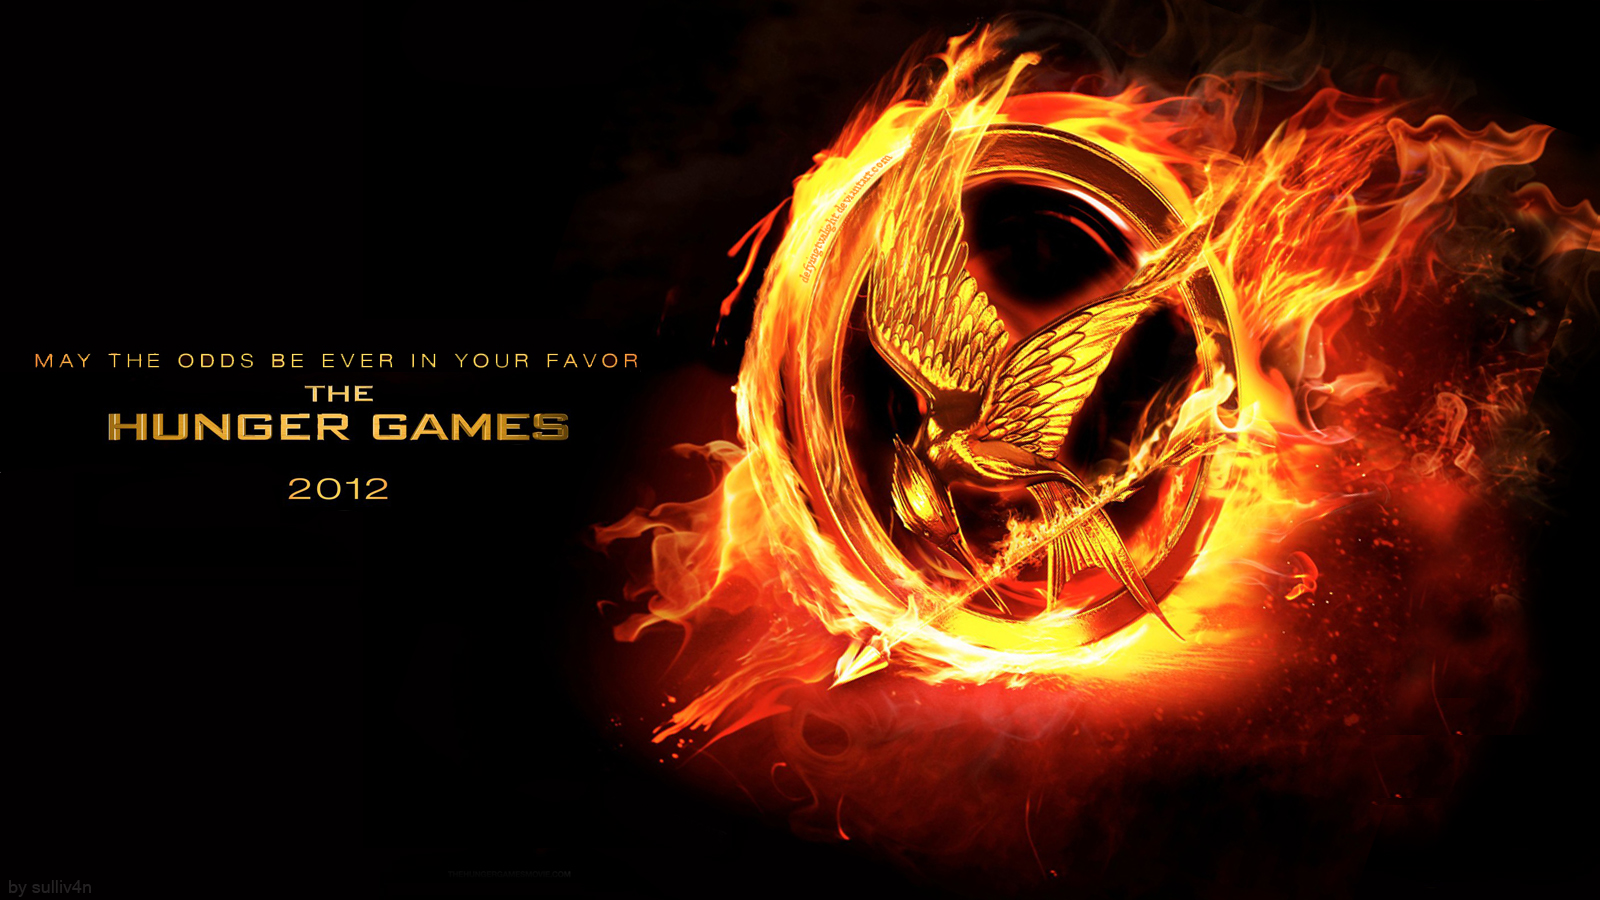 The Hunger Games images The Hunger Games Wallpaper HD 1600x900